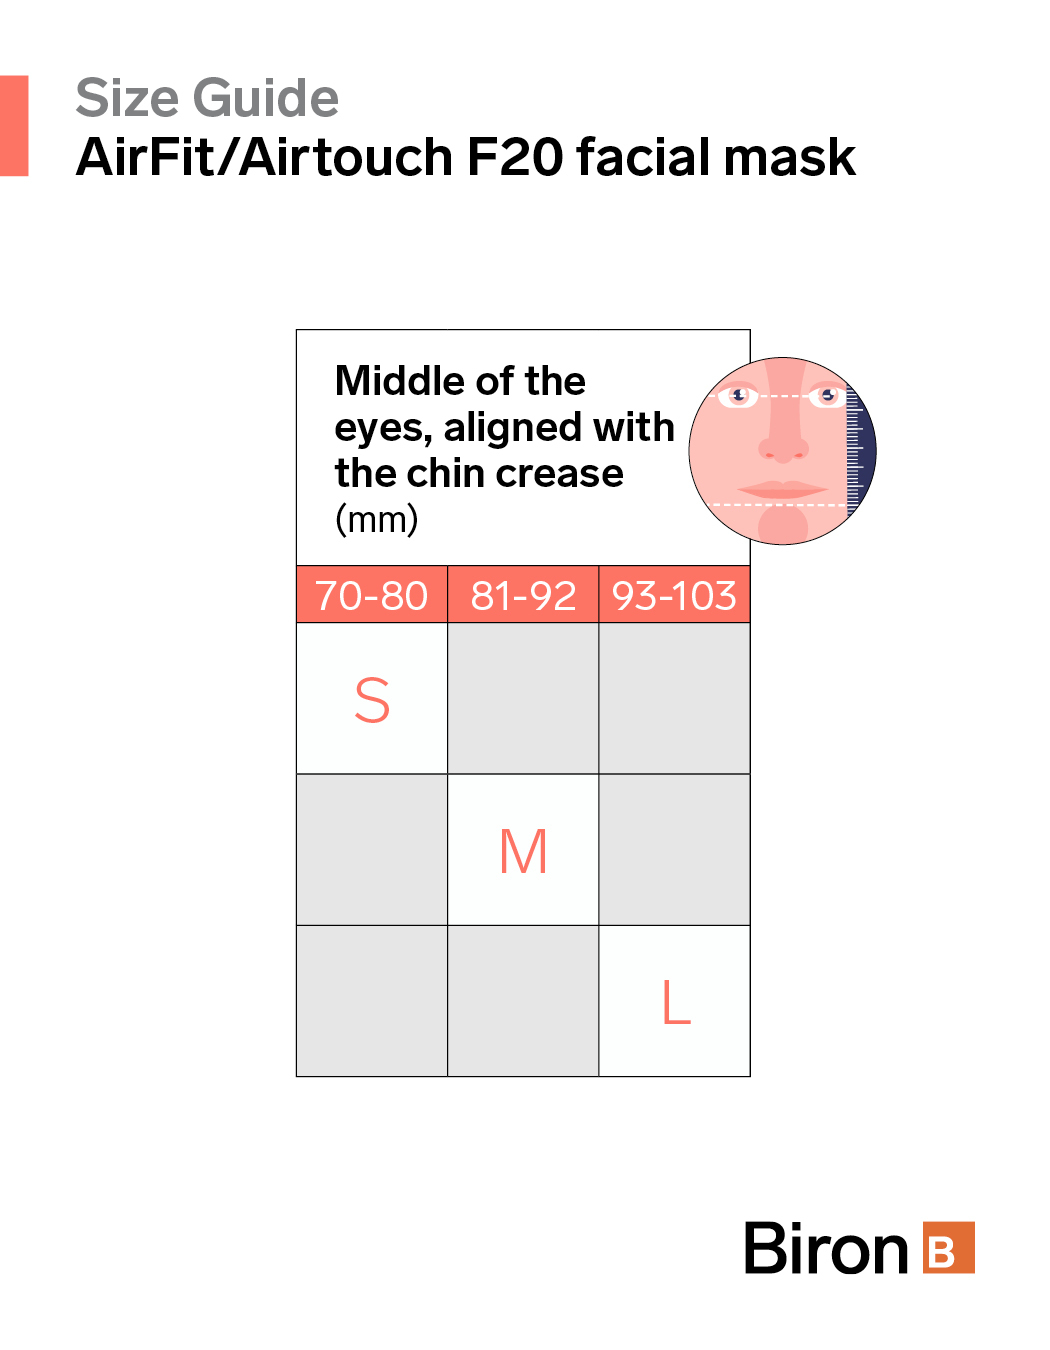 Size guide Airtouch F20 facial mask